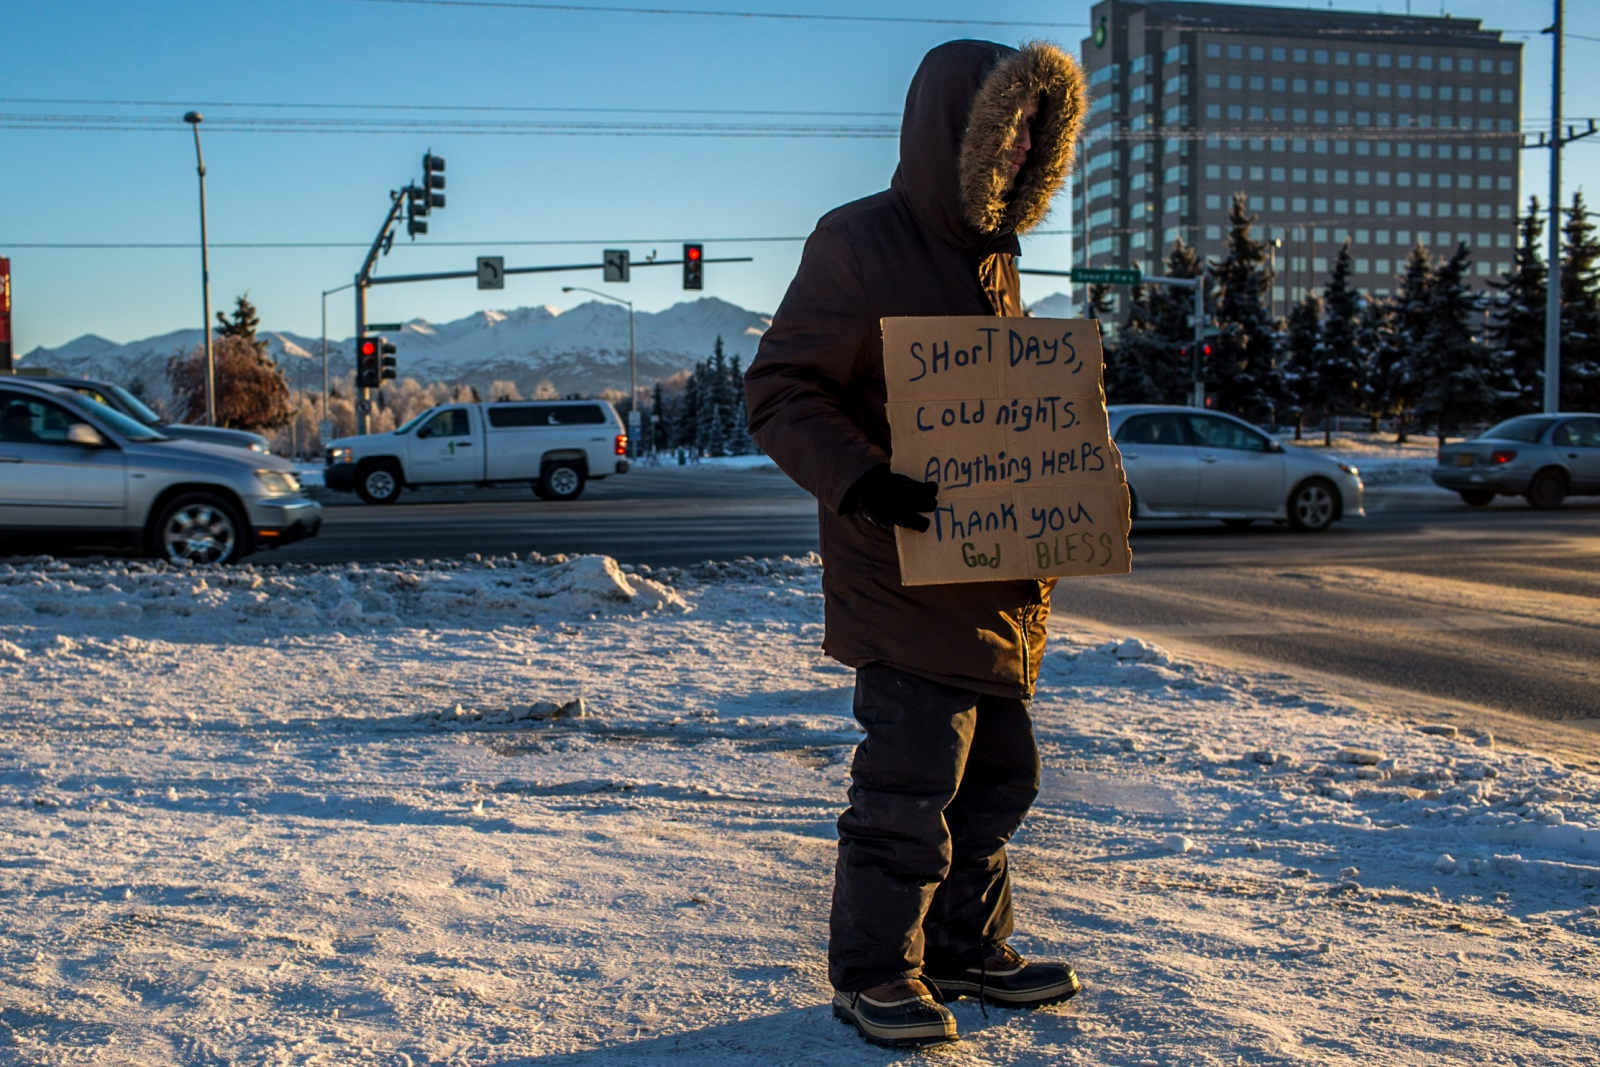 "Carl, 28, holds a sign on a corner in Anchorage on the morning December 14, 2016, when the temperature remained in single digits. Carl has been homeless for most of his life. According to him, his 20th anniversary of being homeless is coming up next month, shortly after his birthday. He says physically, the hardest part about being homeless in Anchorage is the frostbite; he typically suffers 5 bouts of frostbite each winter, and is presently suffering his second bout this season. He says he's gotten into cycles in the past of going to jail just to stay warm, which has now made getting work difficult. ""I have 29 misdemeanor thefts, so nobody is going to hire me. So I'm looking for work, but when [employers] get to the computer part, they literally laugh at me and tell me to get out of their store,"" Carl says. ""I'm not going to lie to nobody; I'm just waiting to die now."" Emotionally, he says homelessness is very difficult in Anchorage. He says people have spit on him, hit him with rocks, and often treat him like he is not even human. ""I gave up a long time ago,"" he says. He has two children, ages 8 and 12, but says he doesn't see them. ""I make sure they don't see me,"" he says."